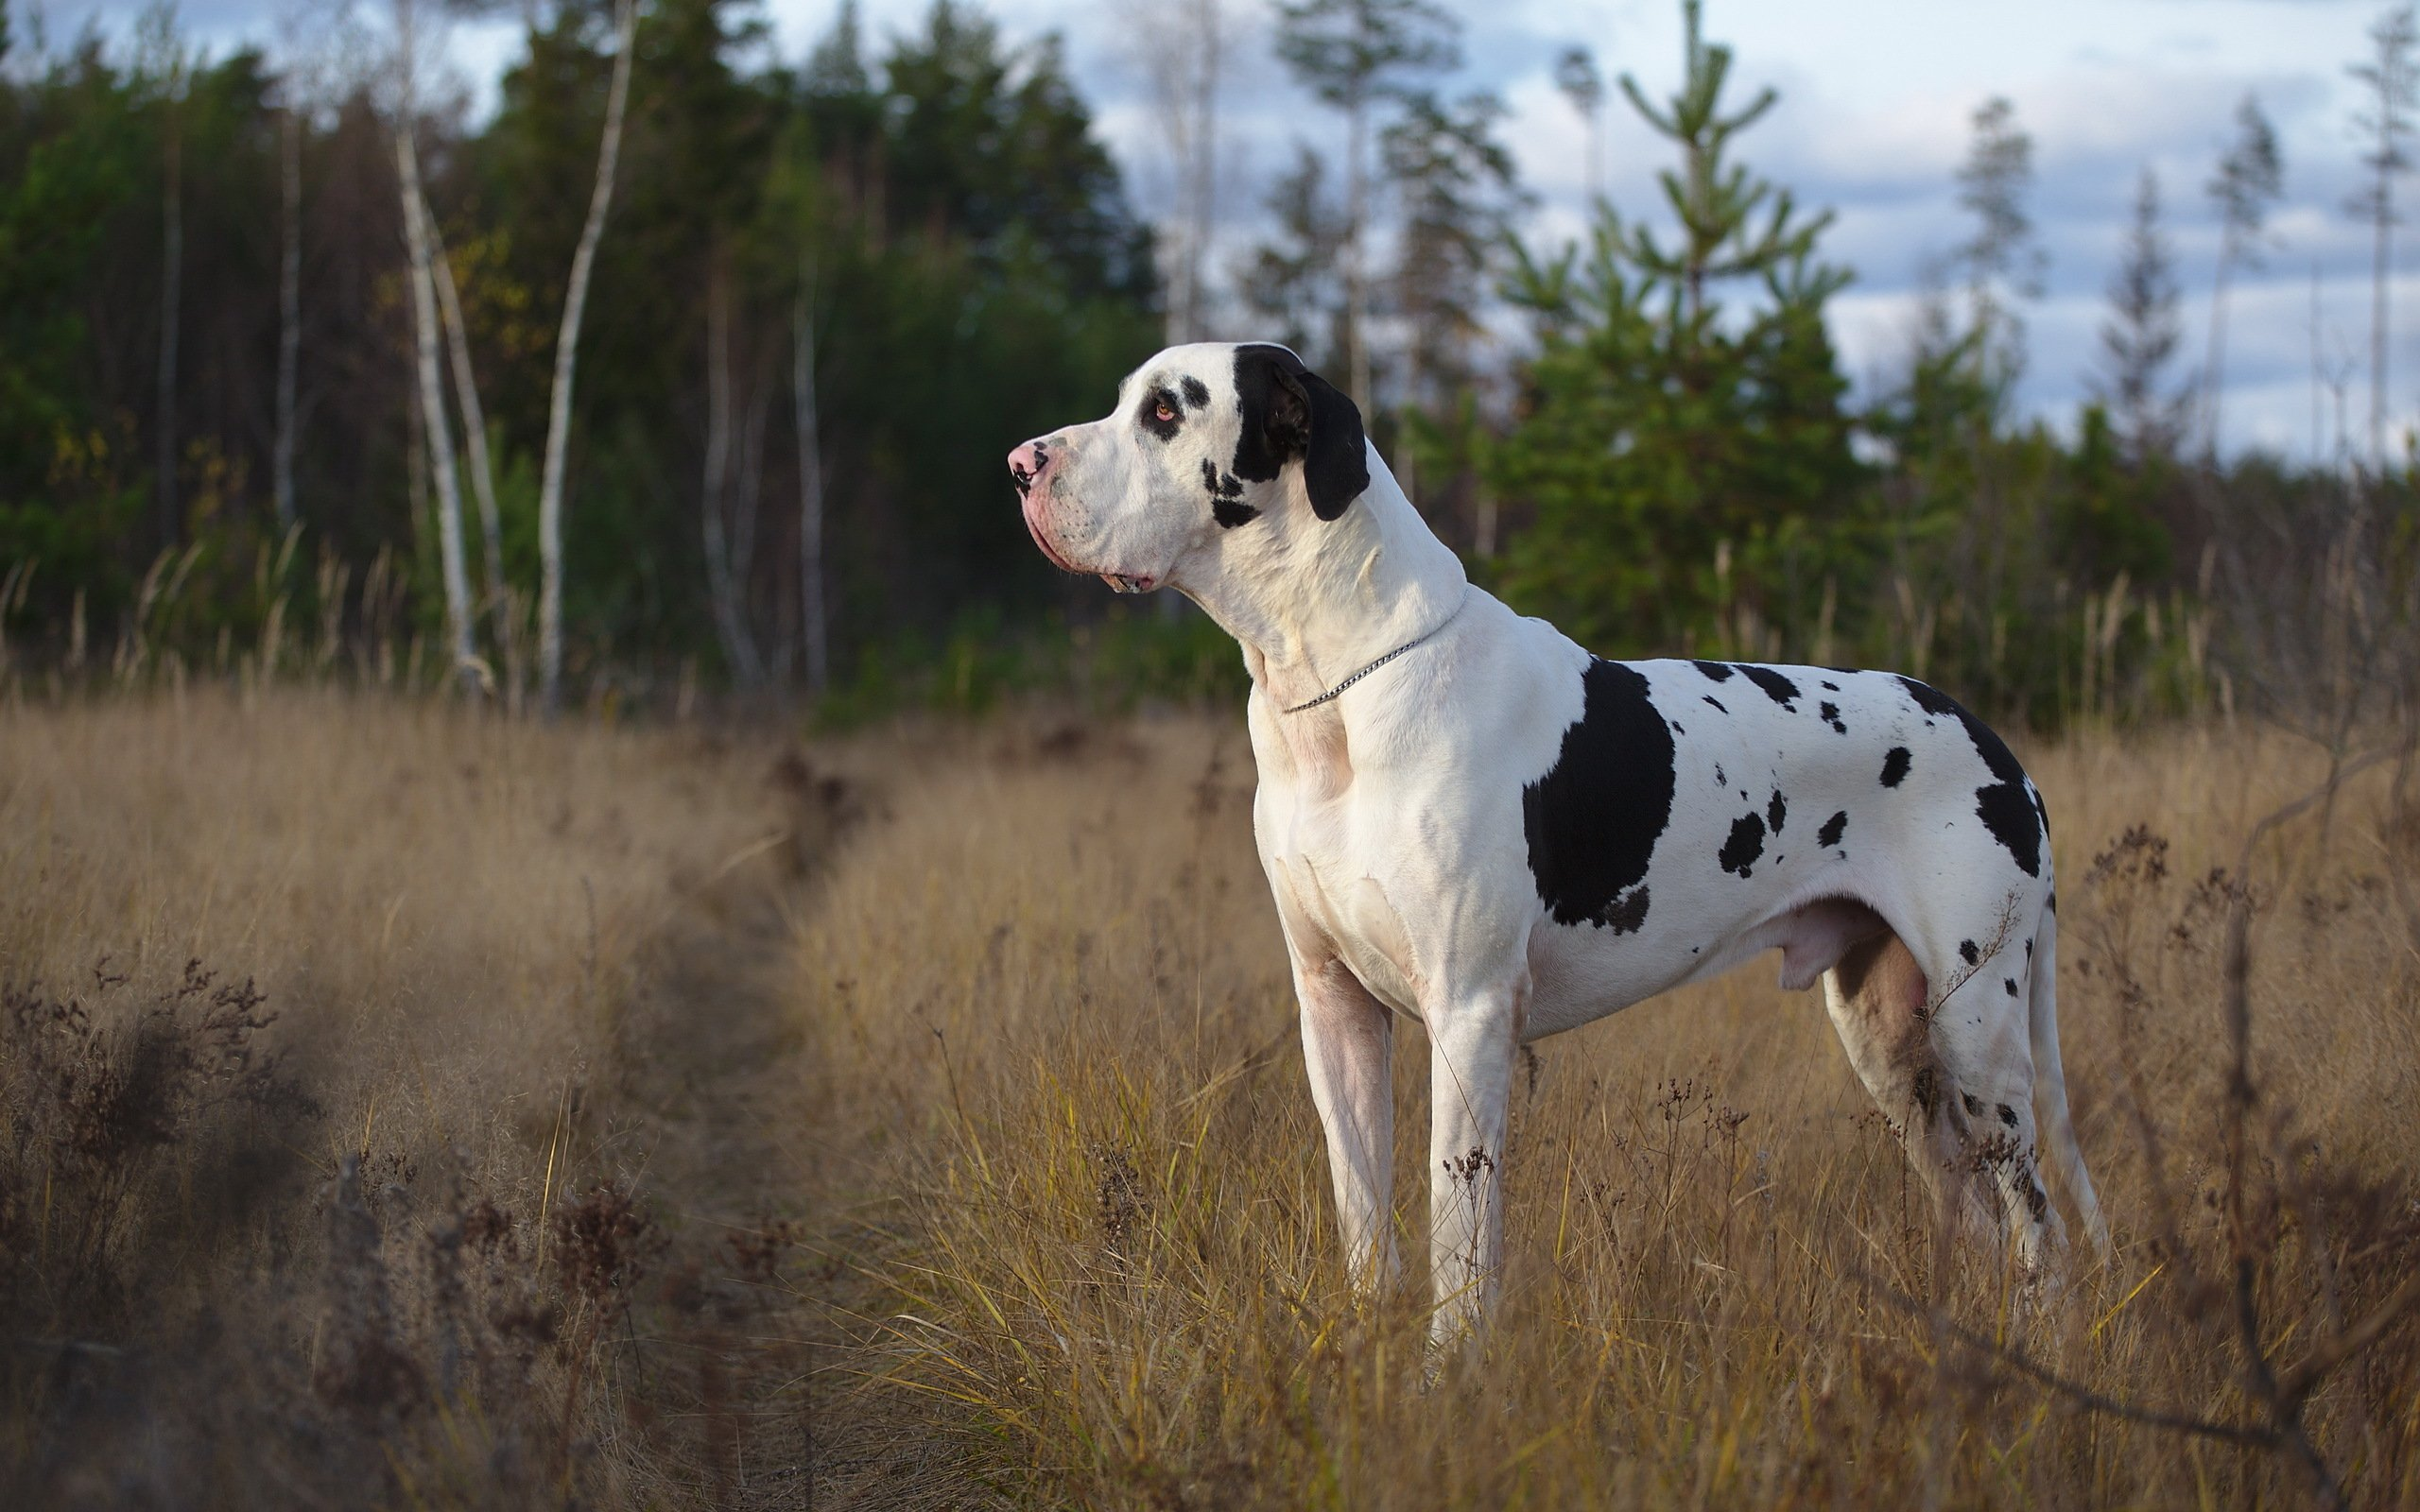 Great Dane Dog Wallpapers: 7 HD Great Dane Dog Wallpapers